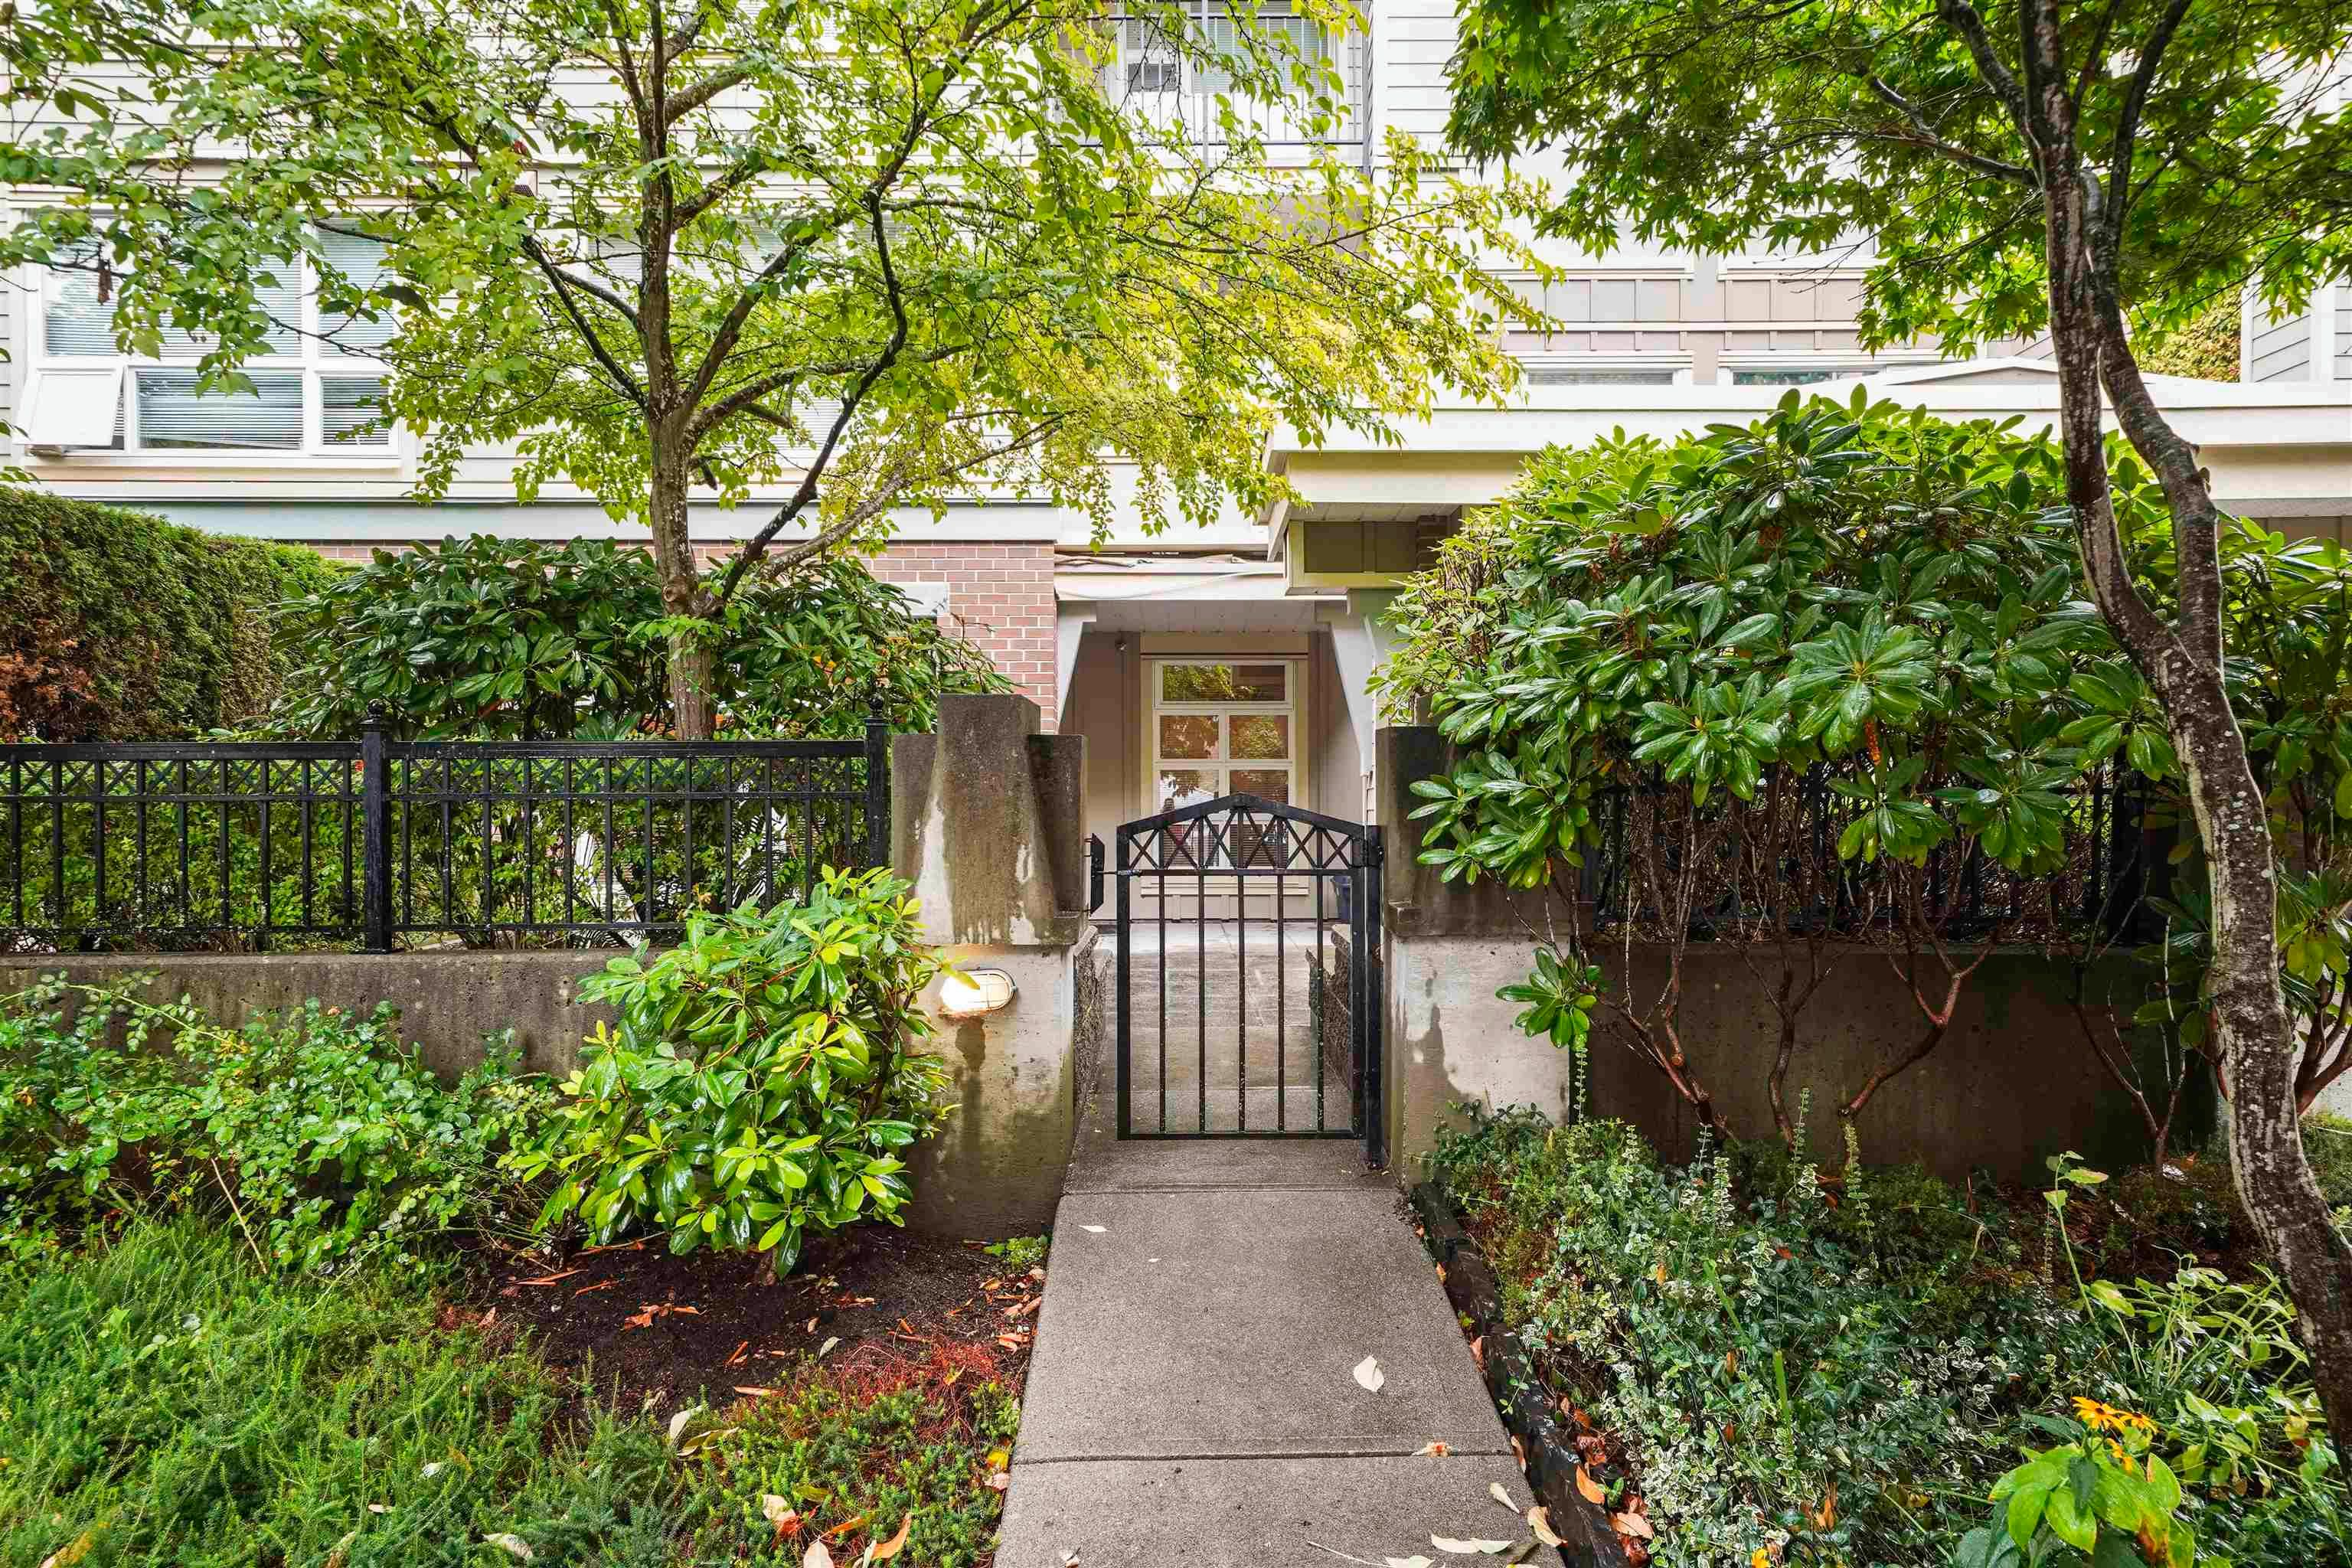 Main Photo: 101 3575 EUCLID Avenue in Vancouver: Collingwood VE Condo for sale (Vancouver East)  : MLS®# R2618333